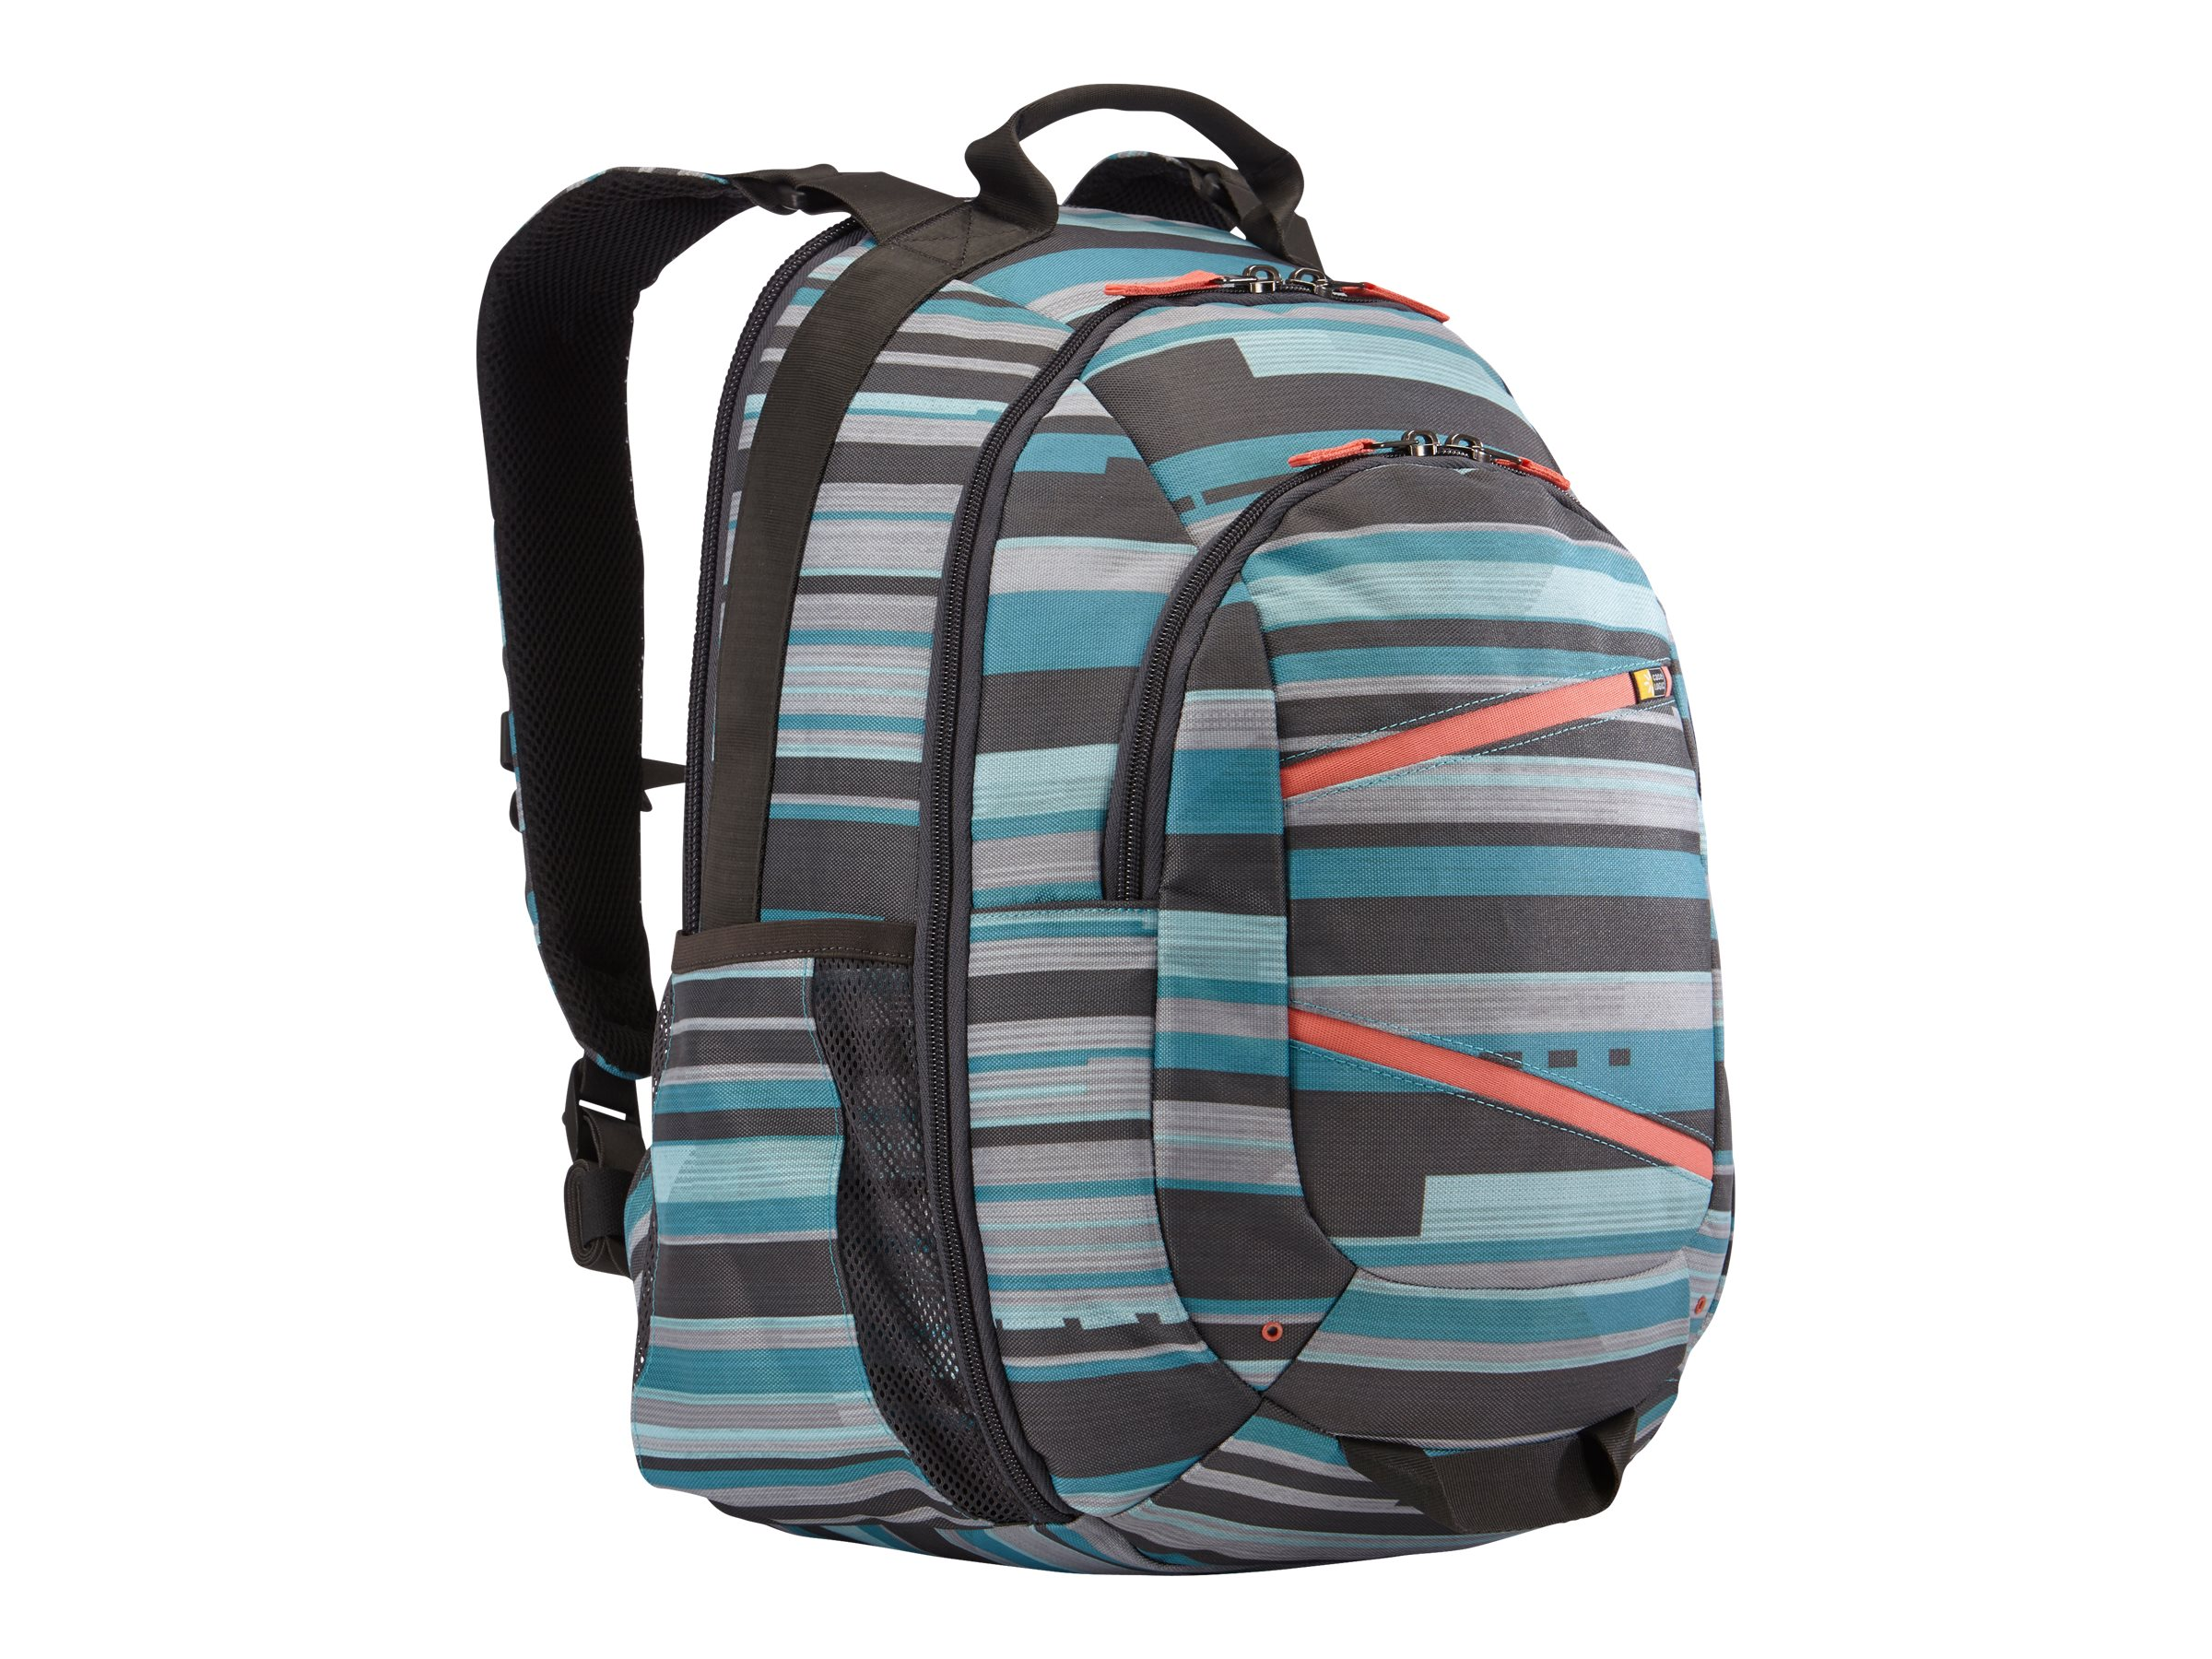 Case Logic Berkeley II Backpack for 15.6 Laptop, Tablet, Playa, BPCA-315PLAYA, 22614214, Carrying Cases - Notebook